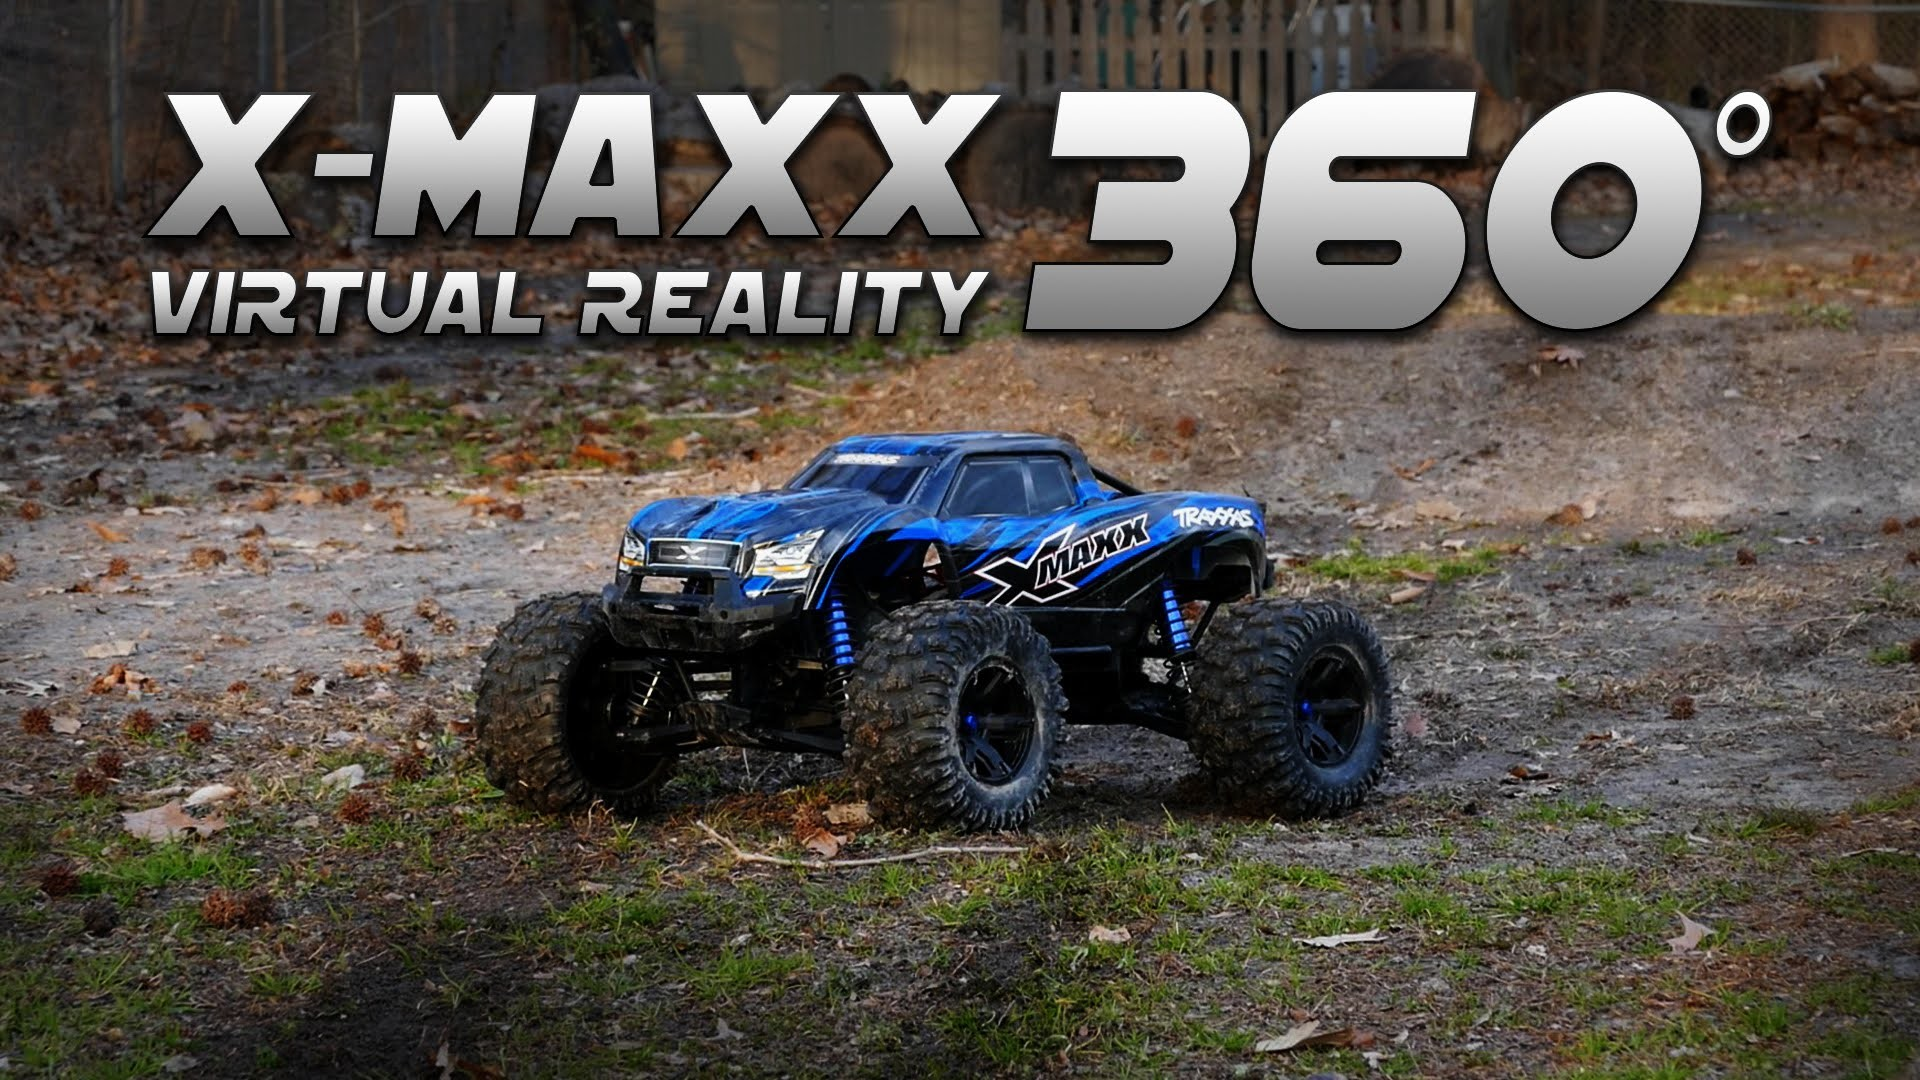 1920x1080 Traxxas X-maxx Bash In 360° Virtual Reality - Shattered Rear Rim - YouTube